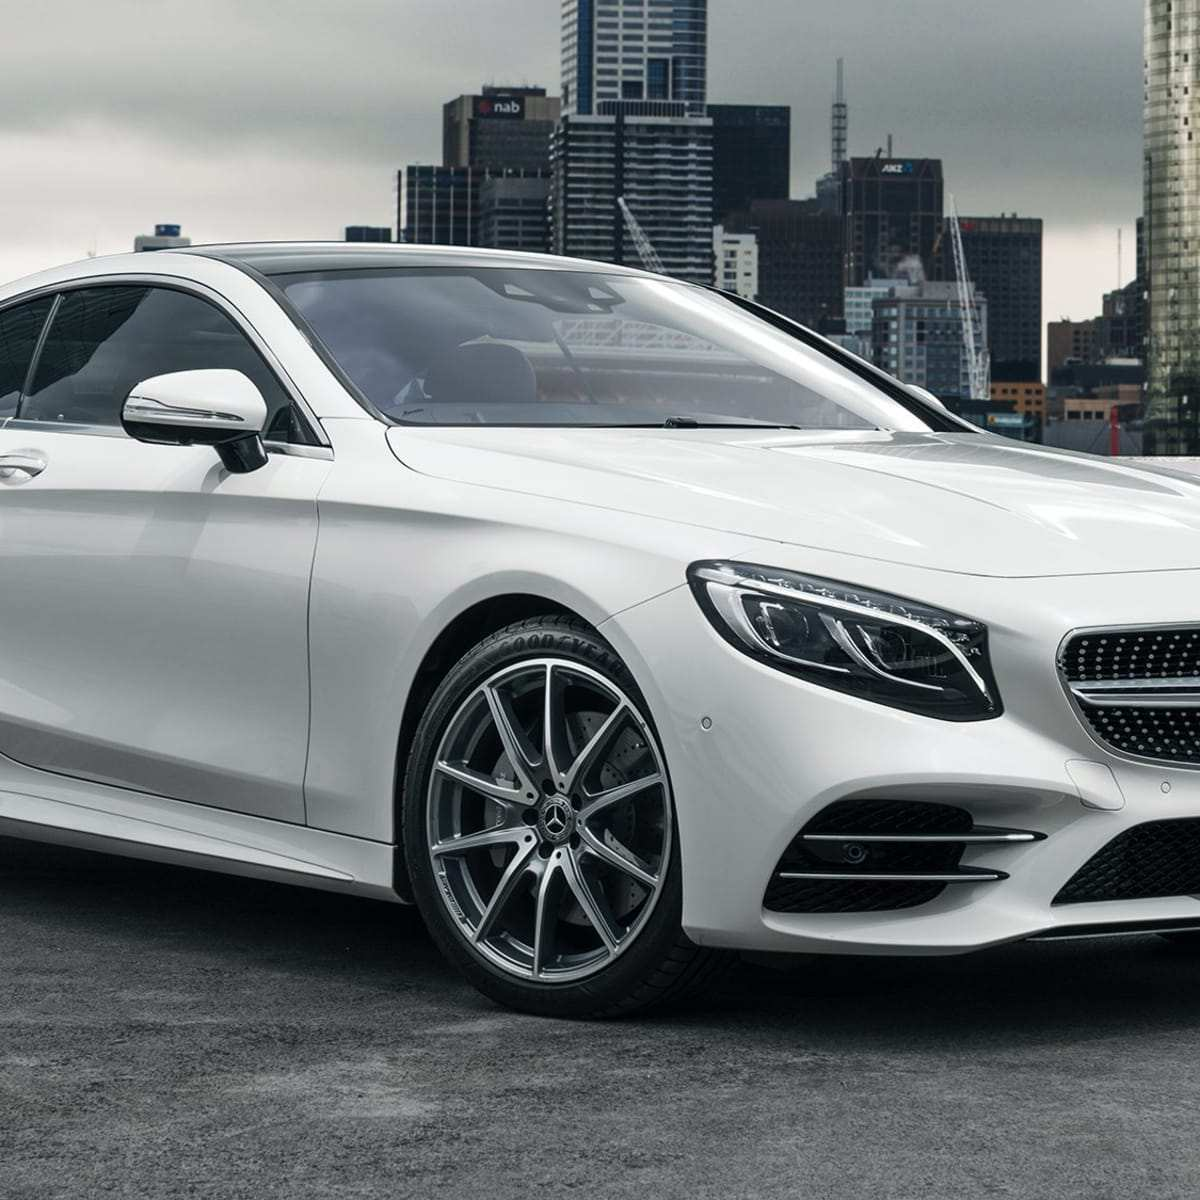 21 A Mercedes S Class Coupe 2019 Configurations